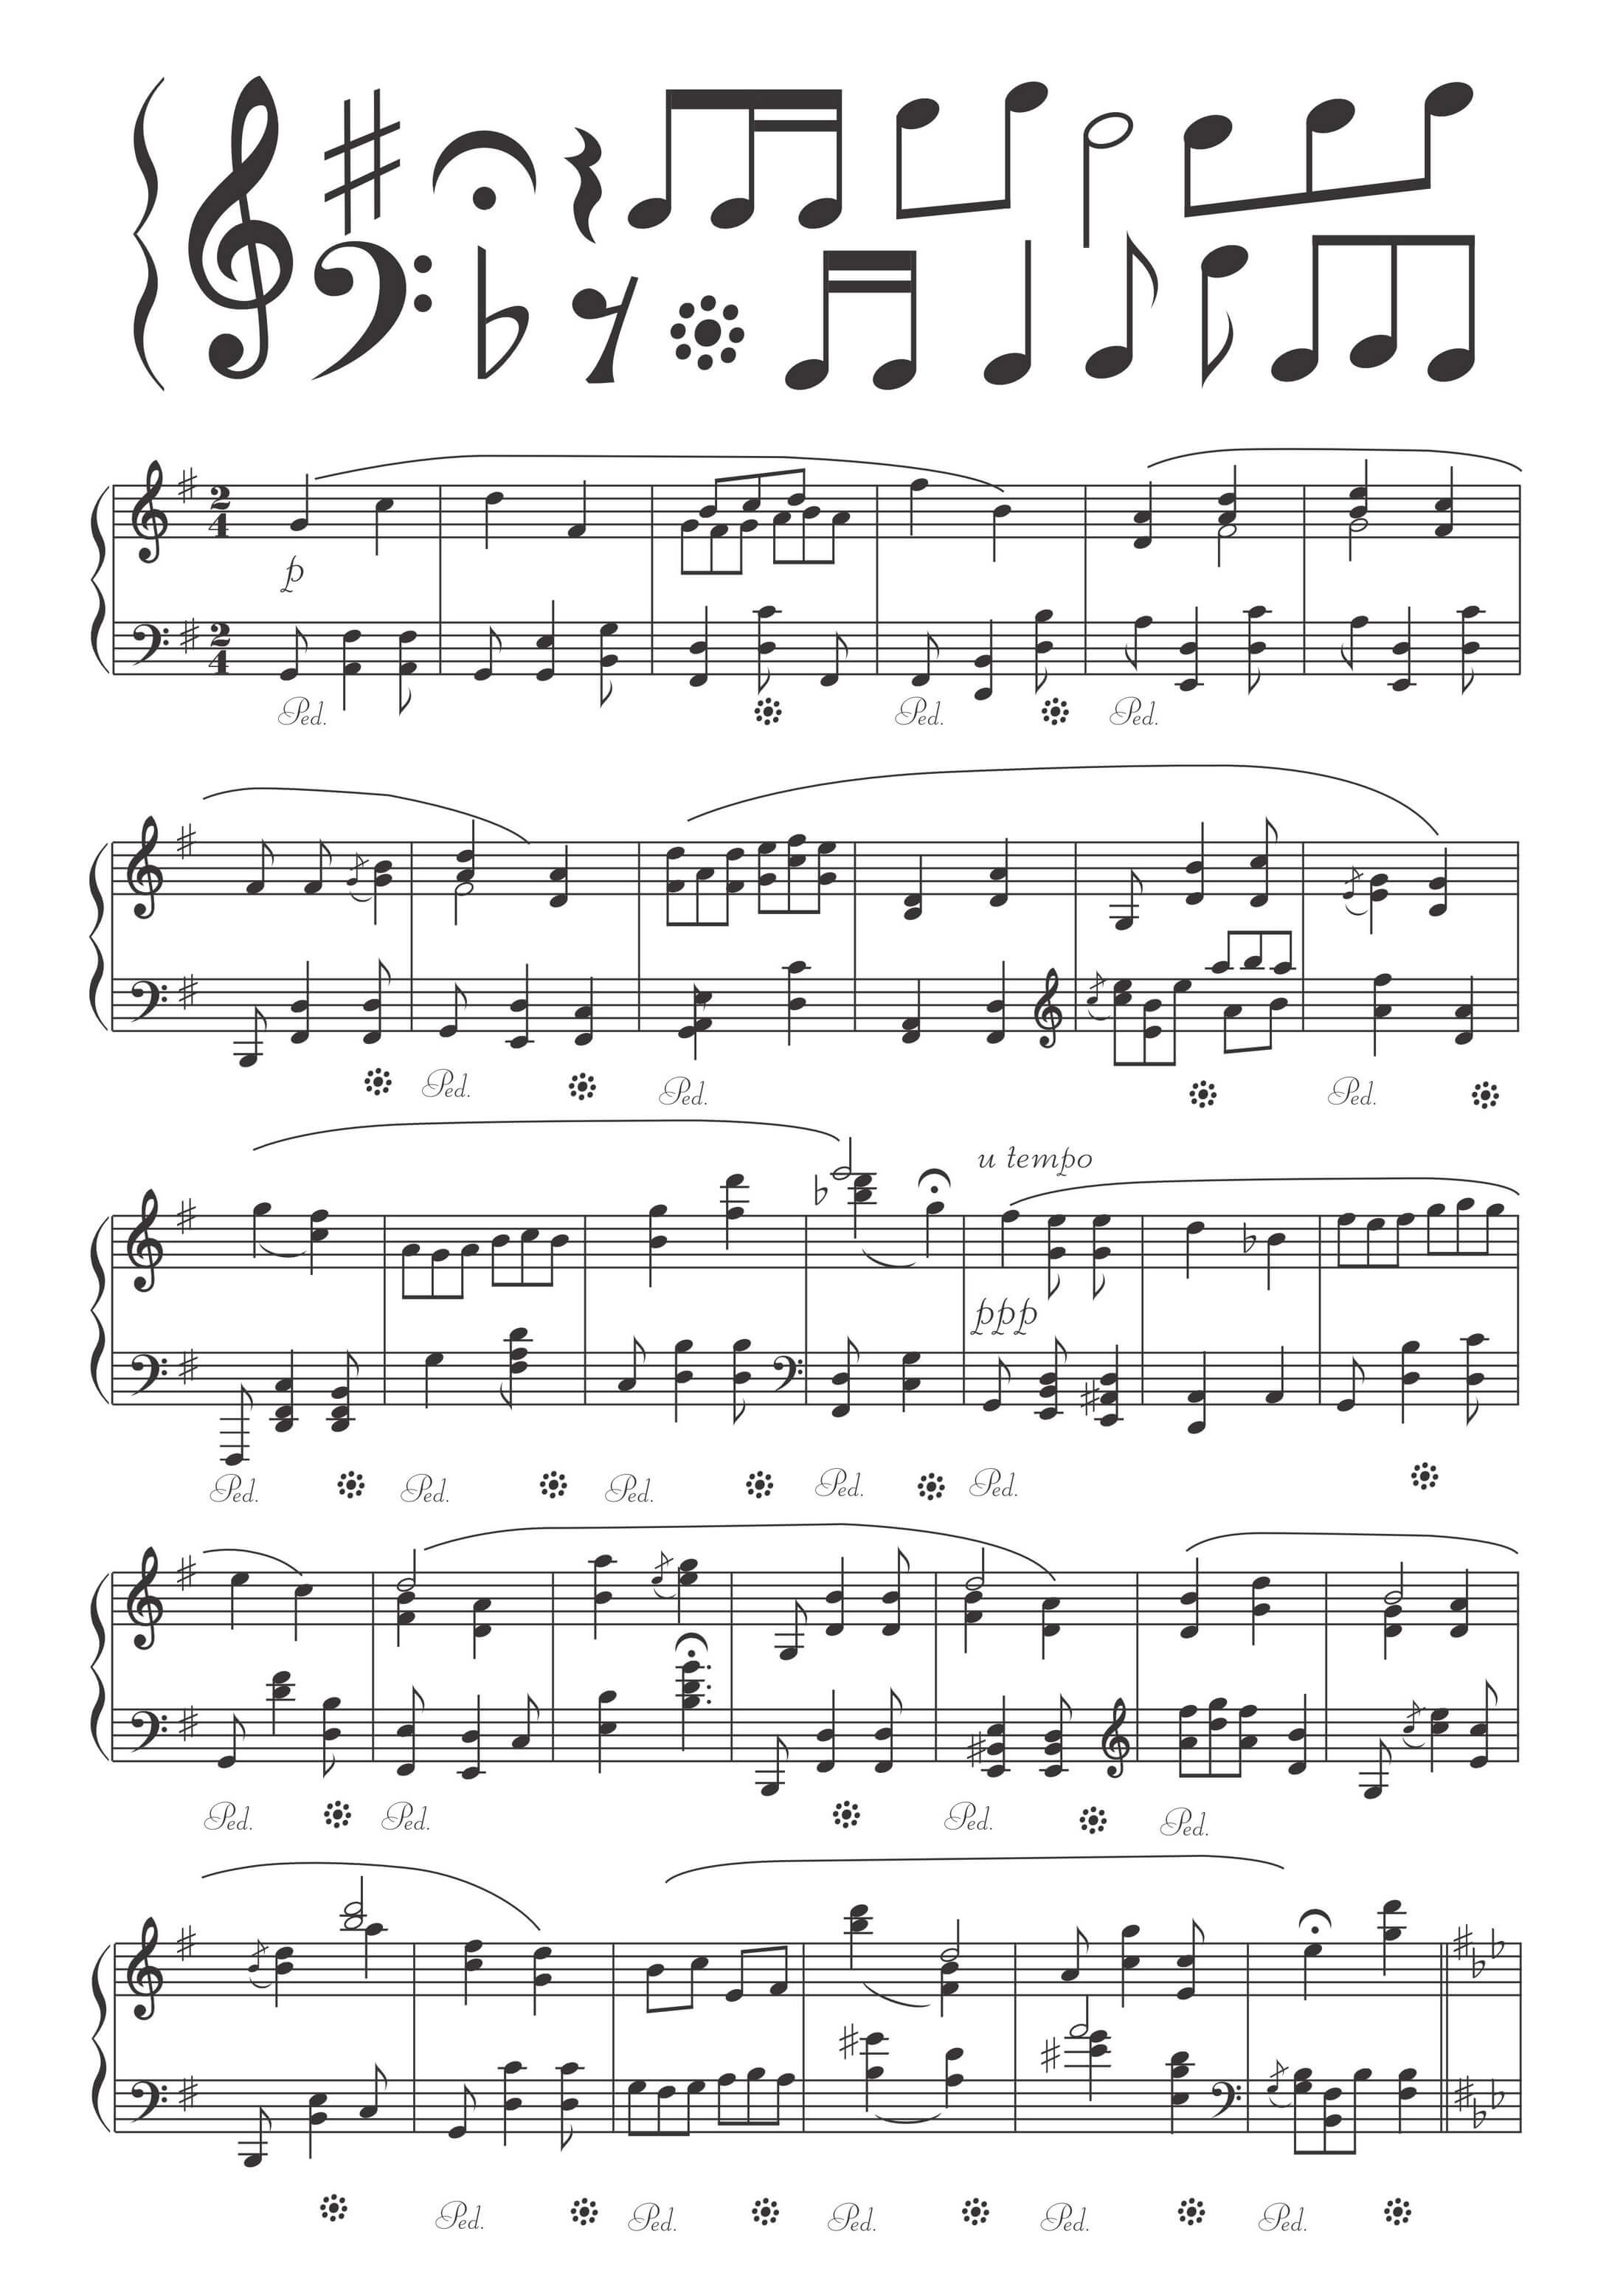 Handwritten Sheet Music png